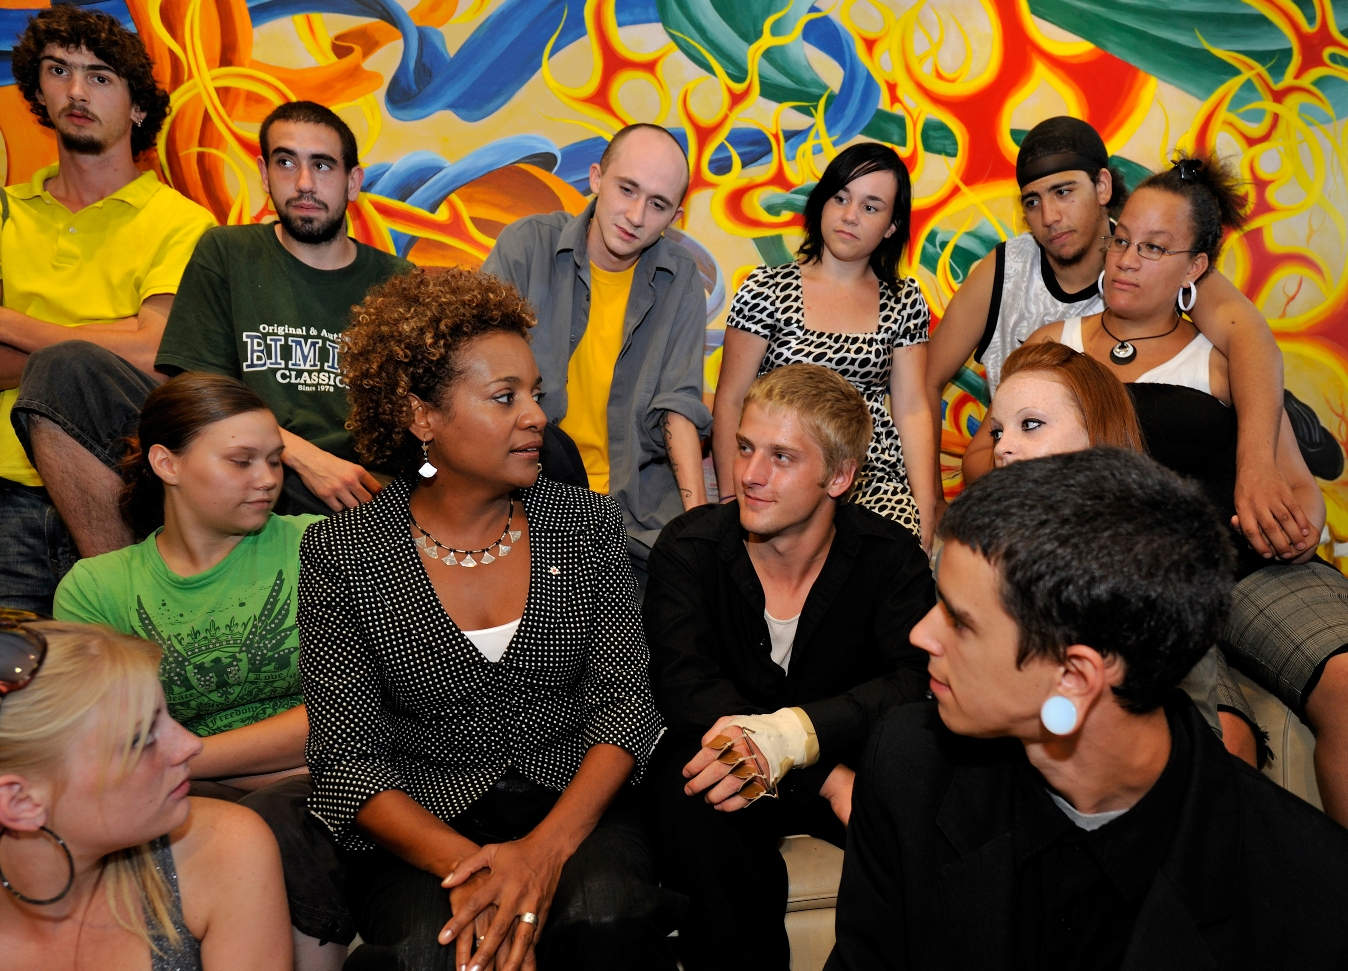 Governor General Michaëlle Jean visits the    Youth QUEST Central (Moncton, New Brunswick). Date: August 14, 2009. Photographer: Sgt Serge Gouin, Rideau Hall. Reference: GG2009-0339-010.